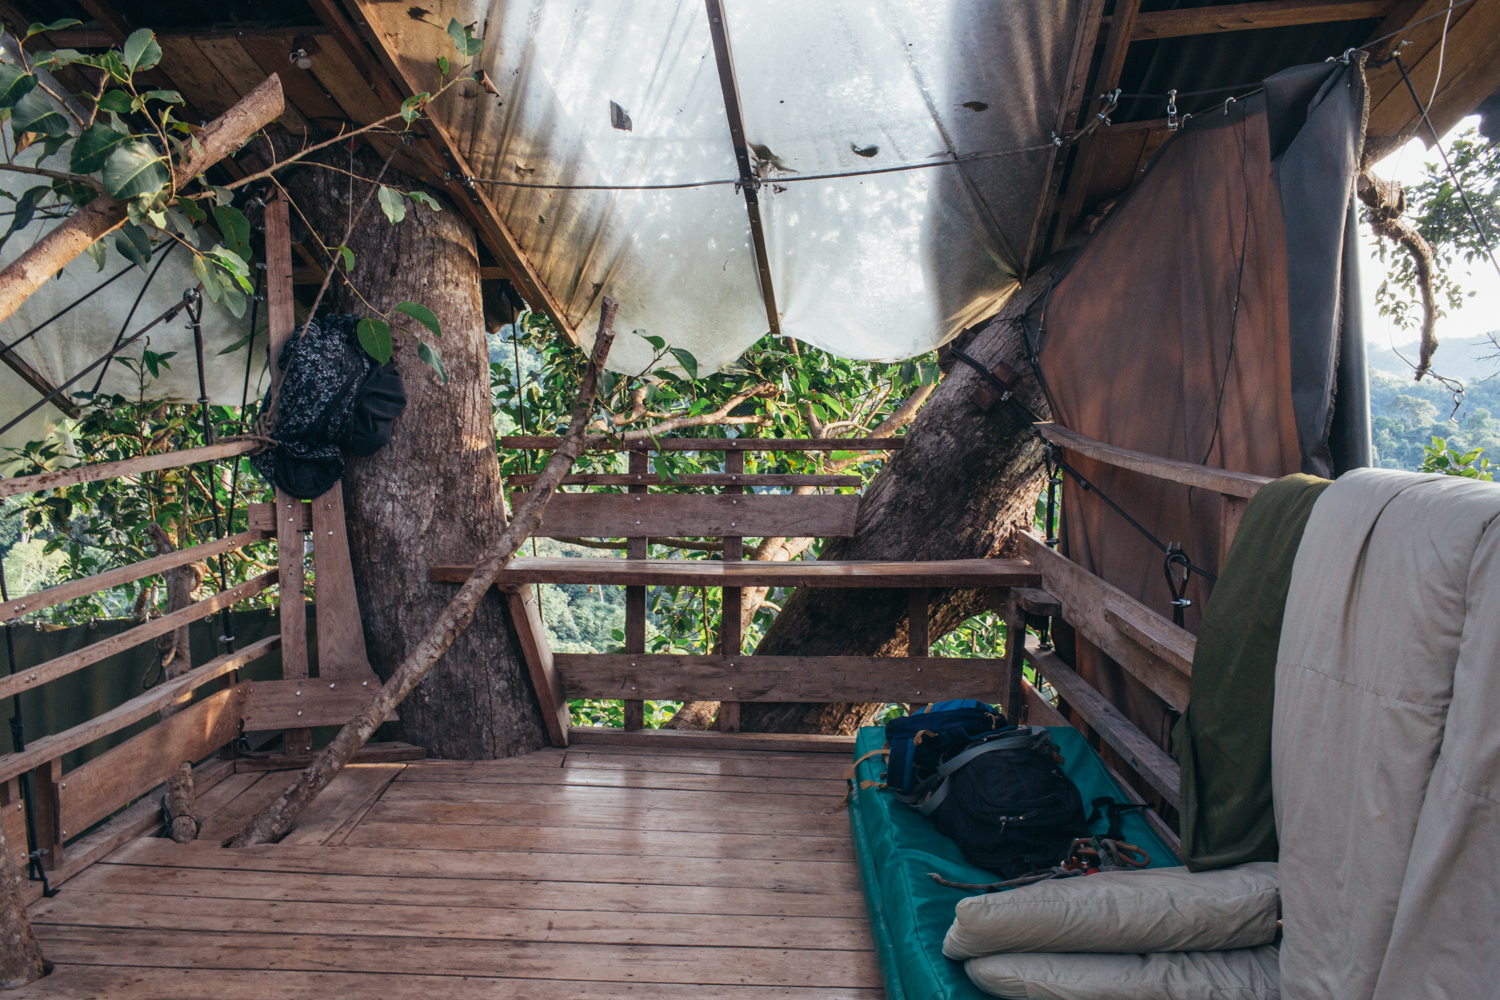 Treehouse where I slept in after zip-lining through the jungle in Laos.